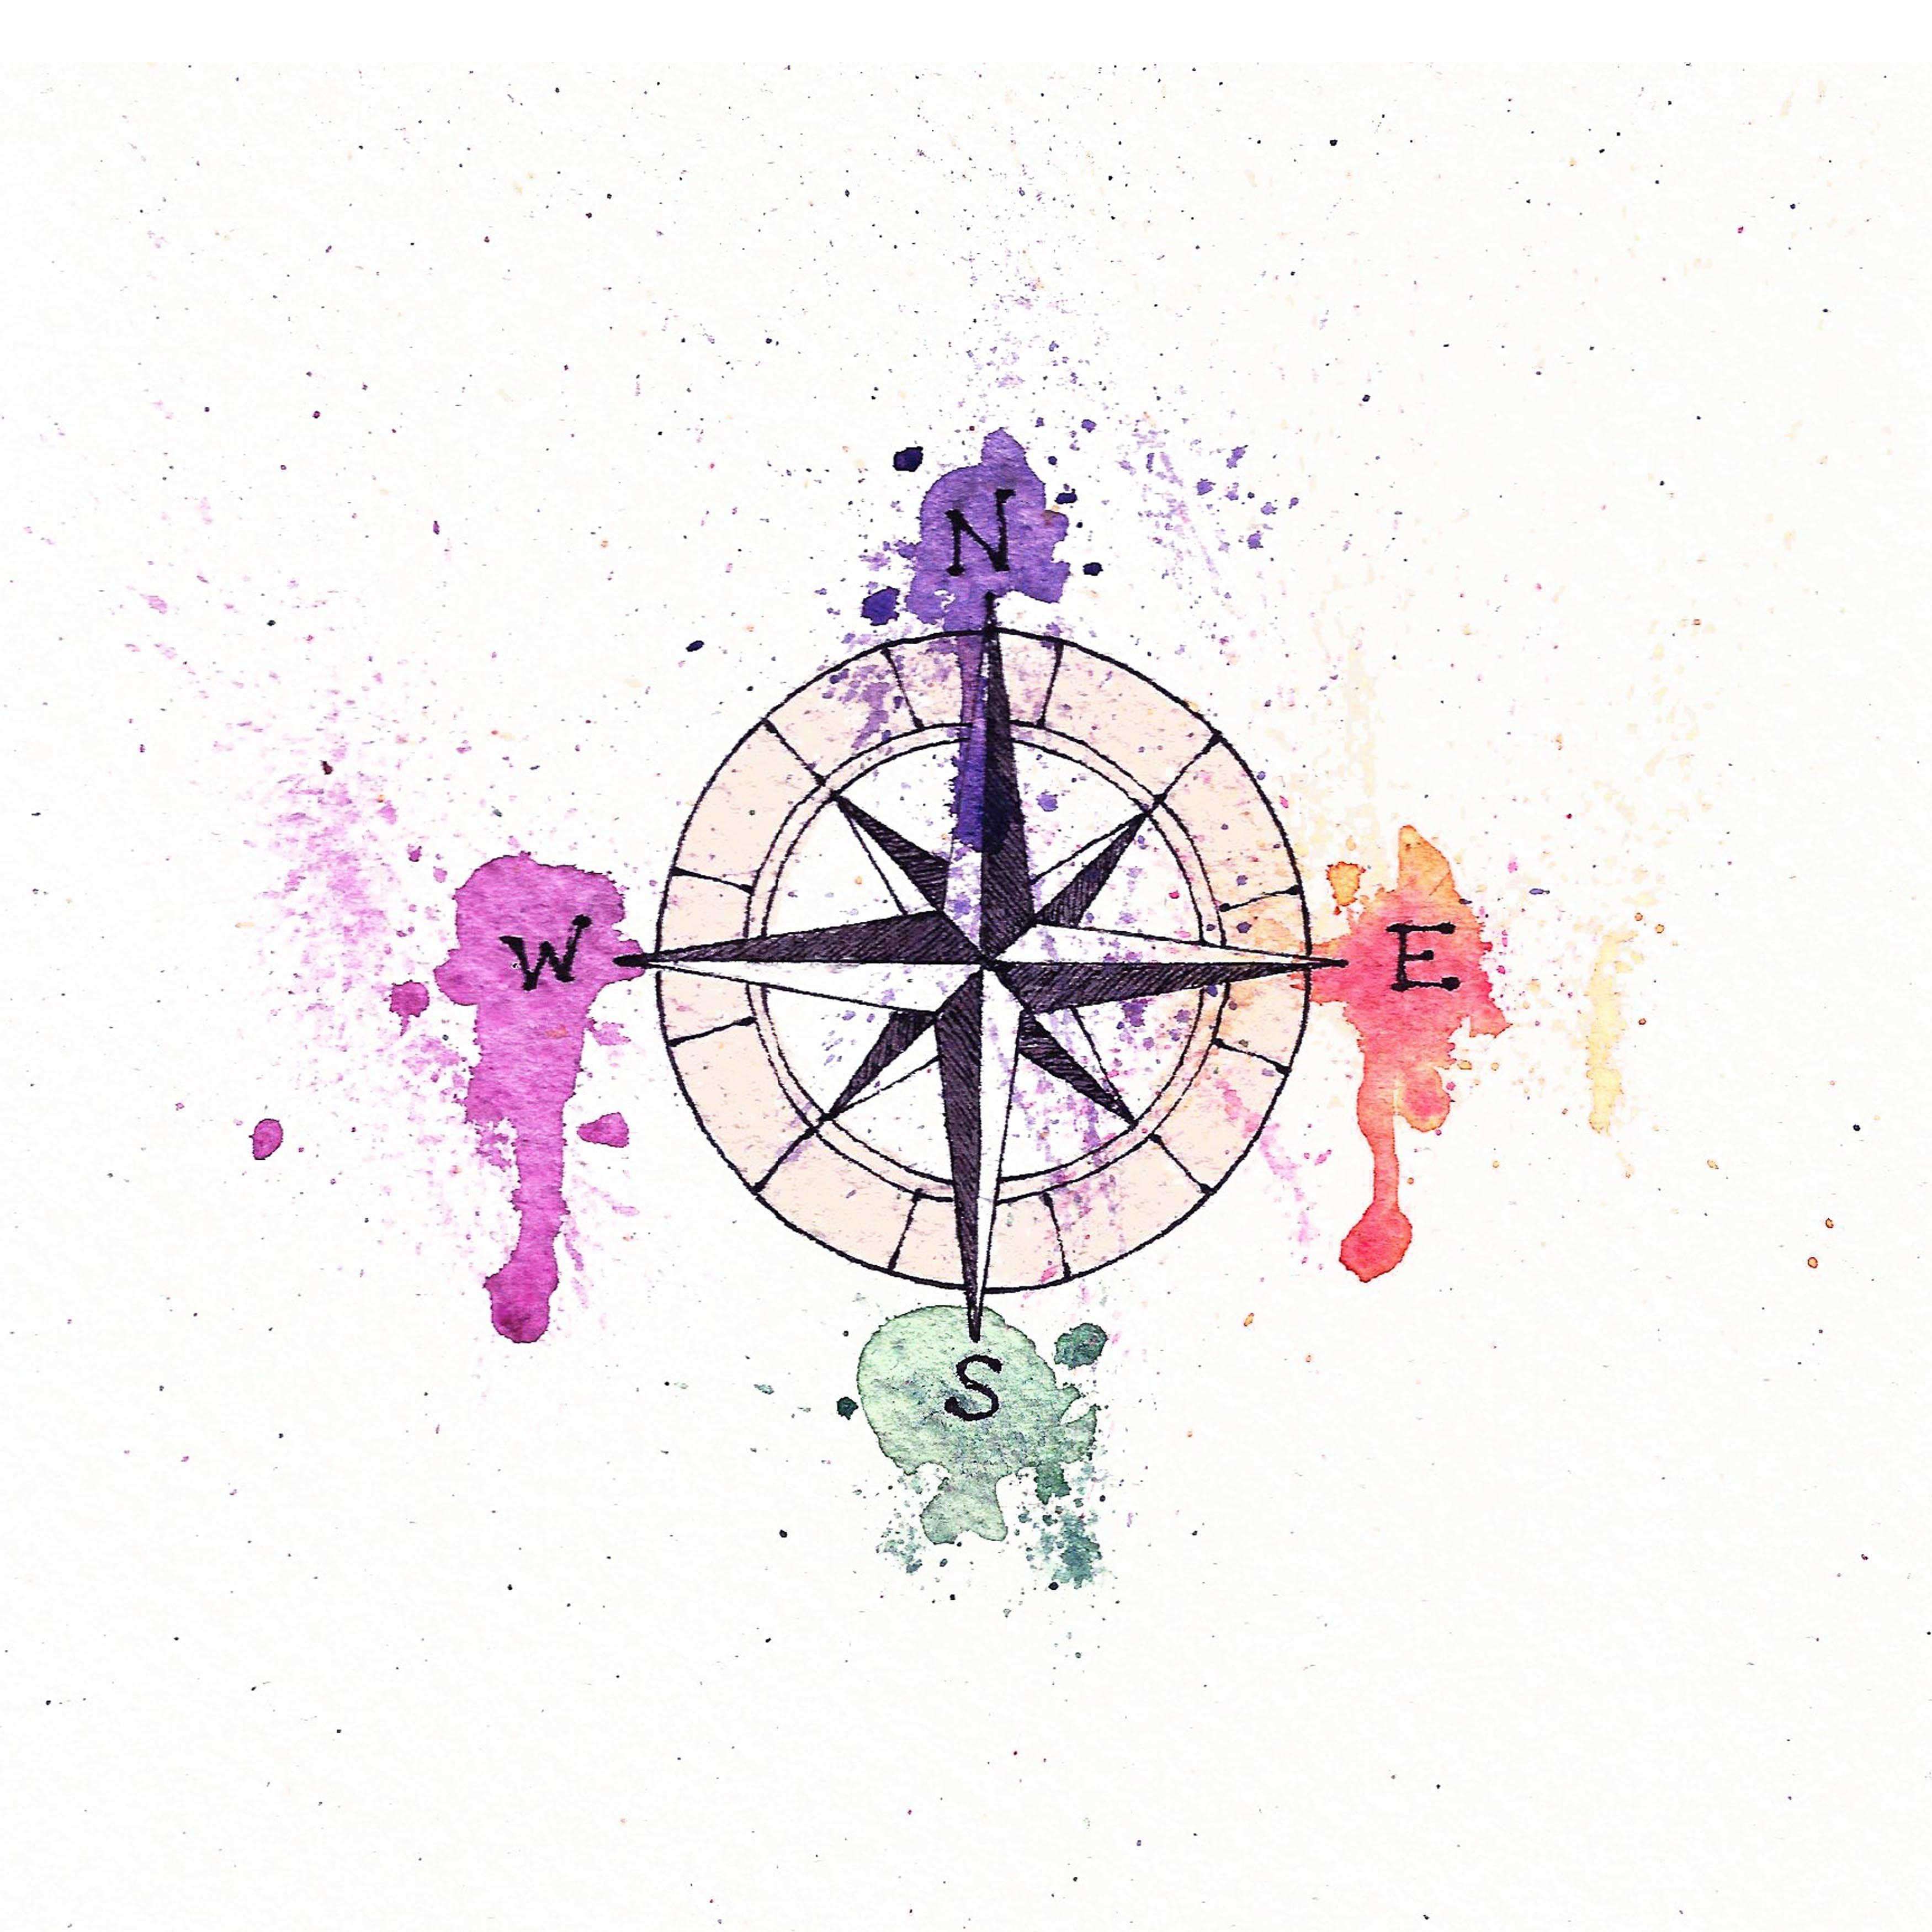 3500x3500 Compass Watercolor Splash Art Artworks Compass And